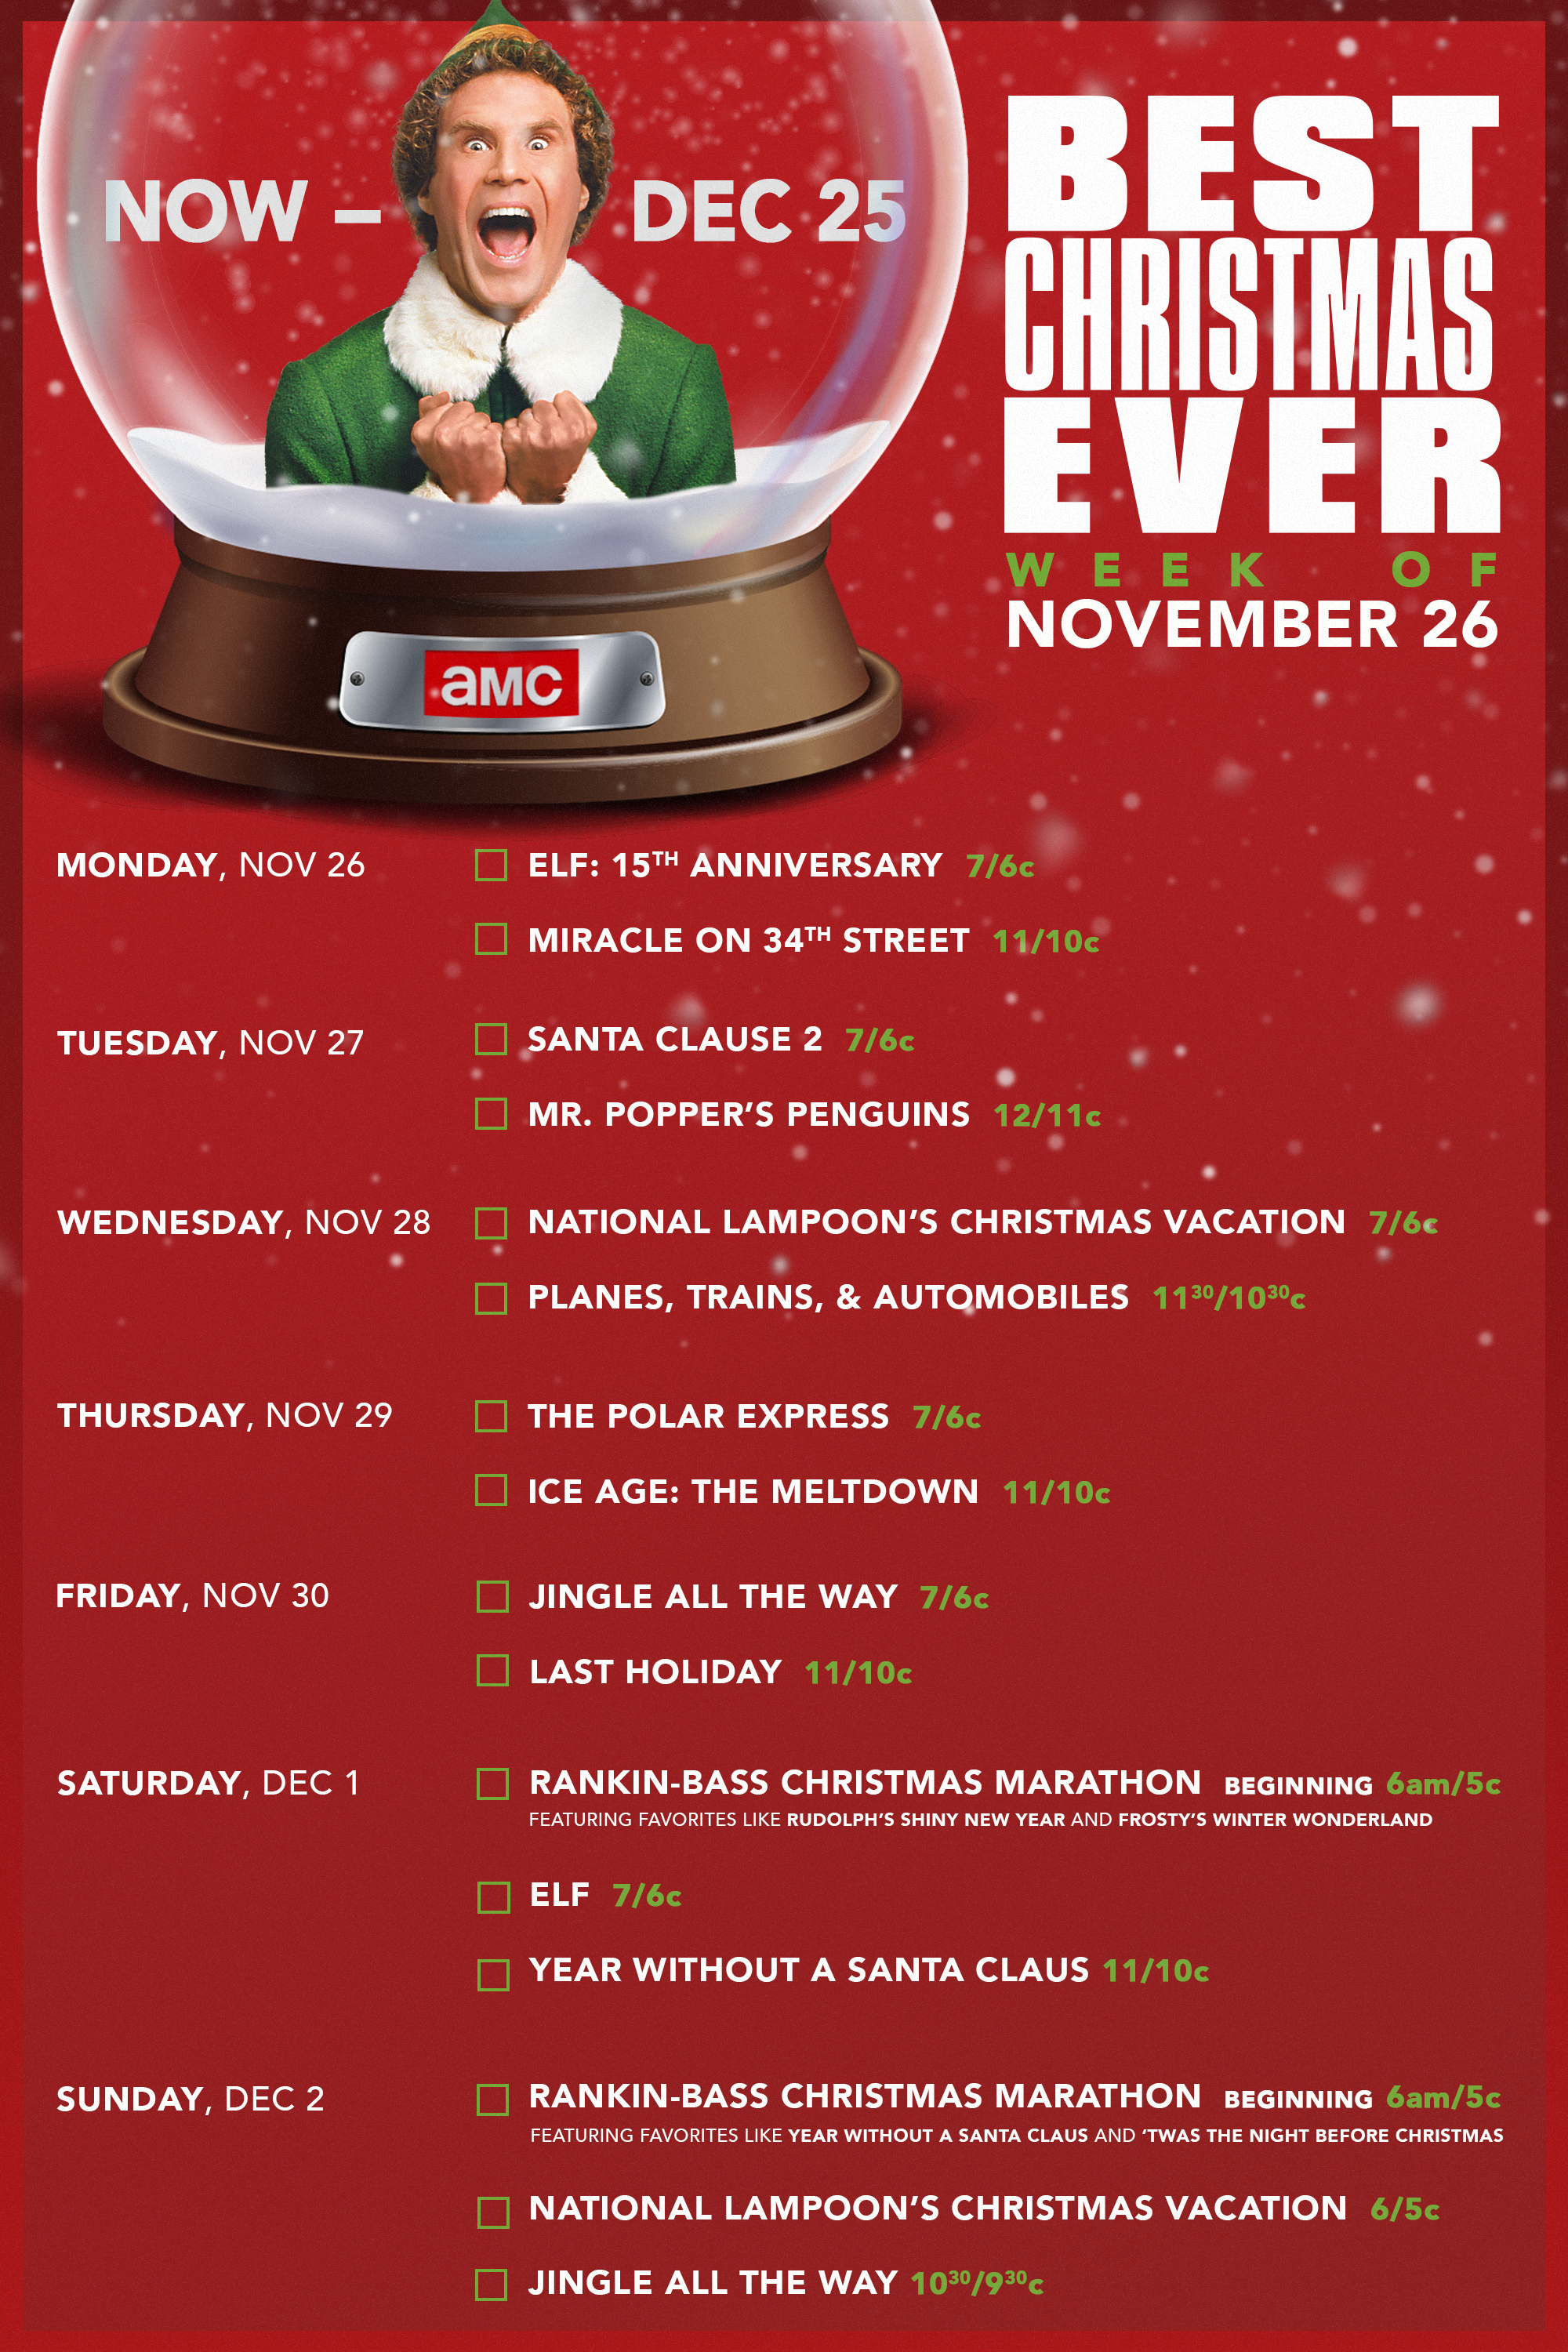 Watch Amc S Bestxmasever Now On Amc Christmas Fun National Lampoons Christmas Vacation Lampoon S Christmas Vacation